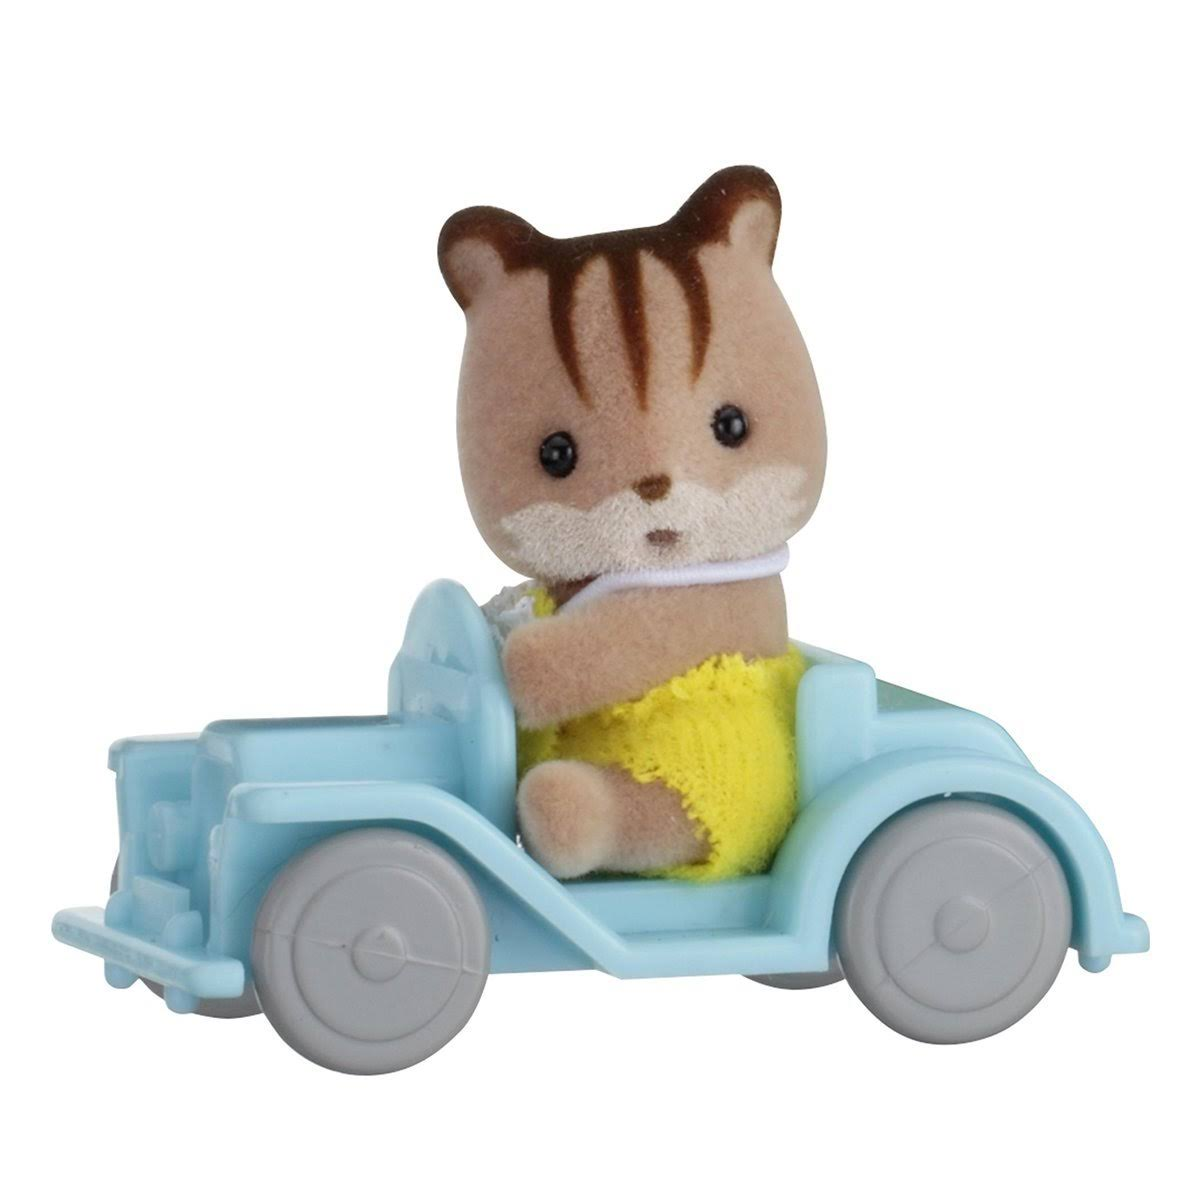 Sylvanian Families Baby Carry Case Playset - Squirrel on Car